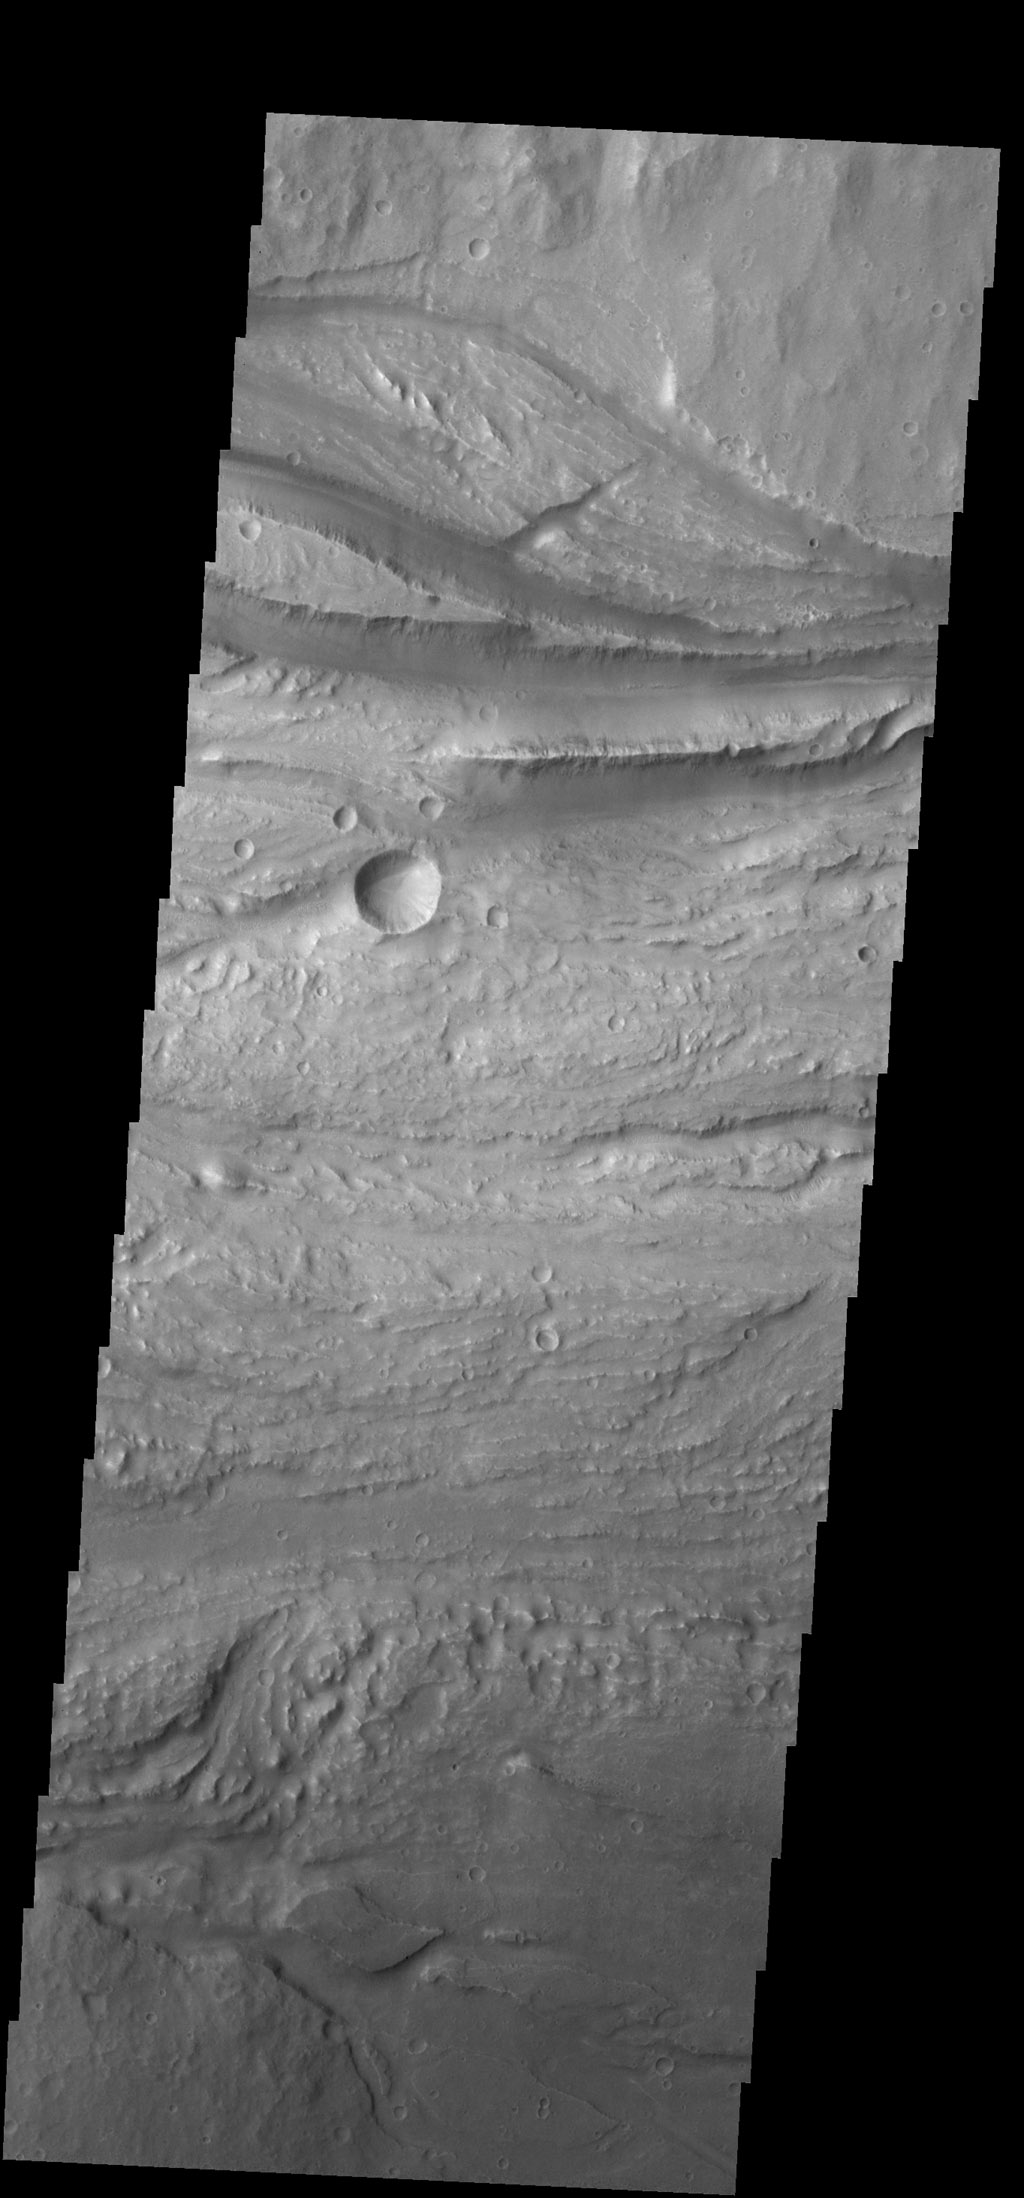 The channels in this image are part of Ravi Vallis as seen by NASA's 2001 Mars Odyssey spacecraft.